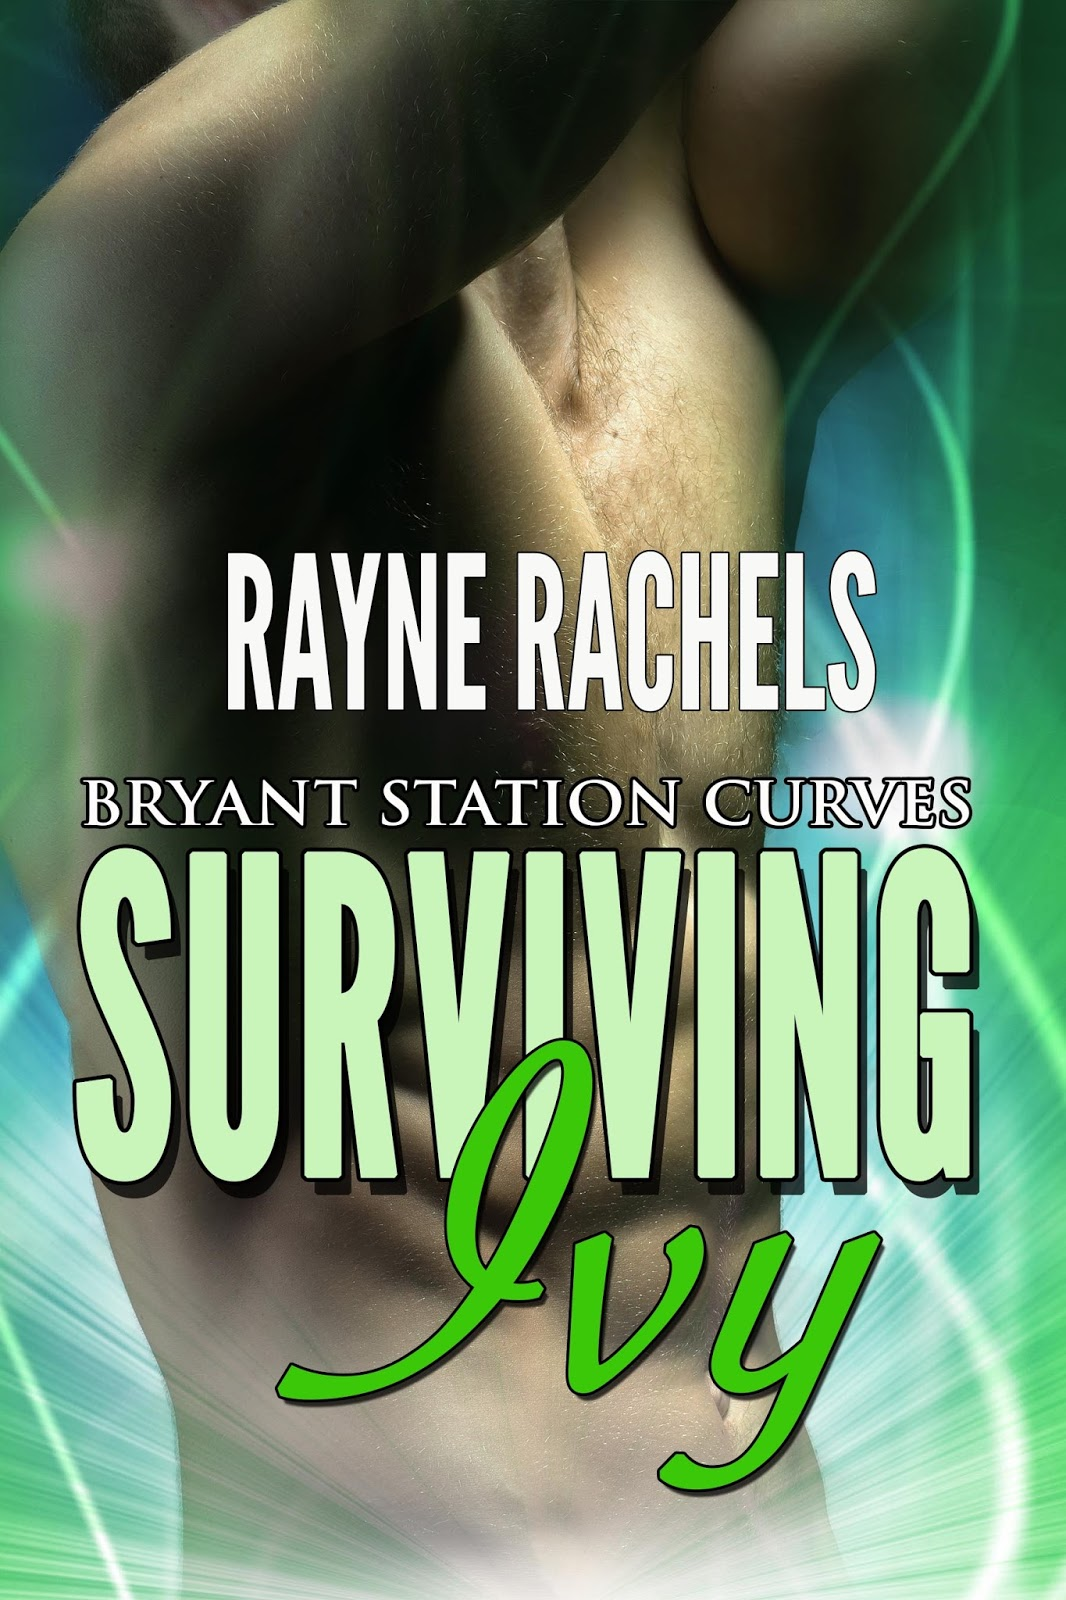 Rayne rachels 2017 surviving ivy is live in ebook form at various vendors though it took me longer to write i really enjoyed ben and ivys story if you have read it fandeluxe Epub